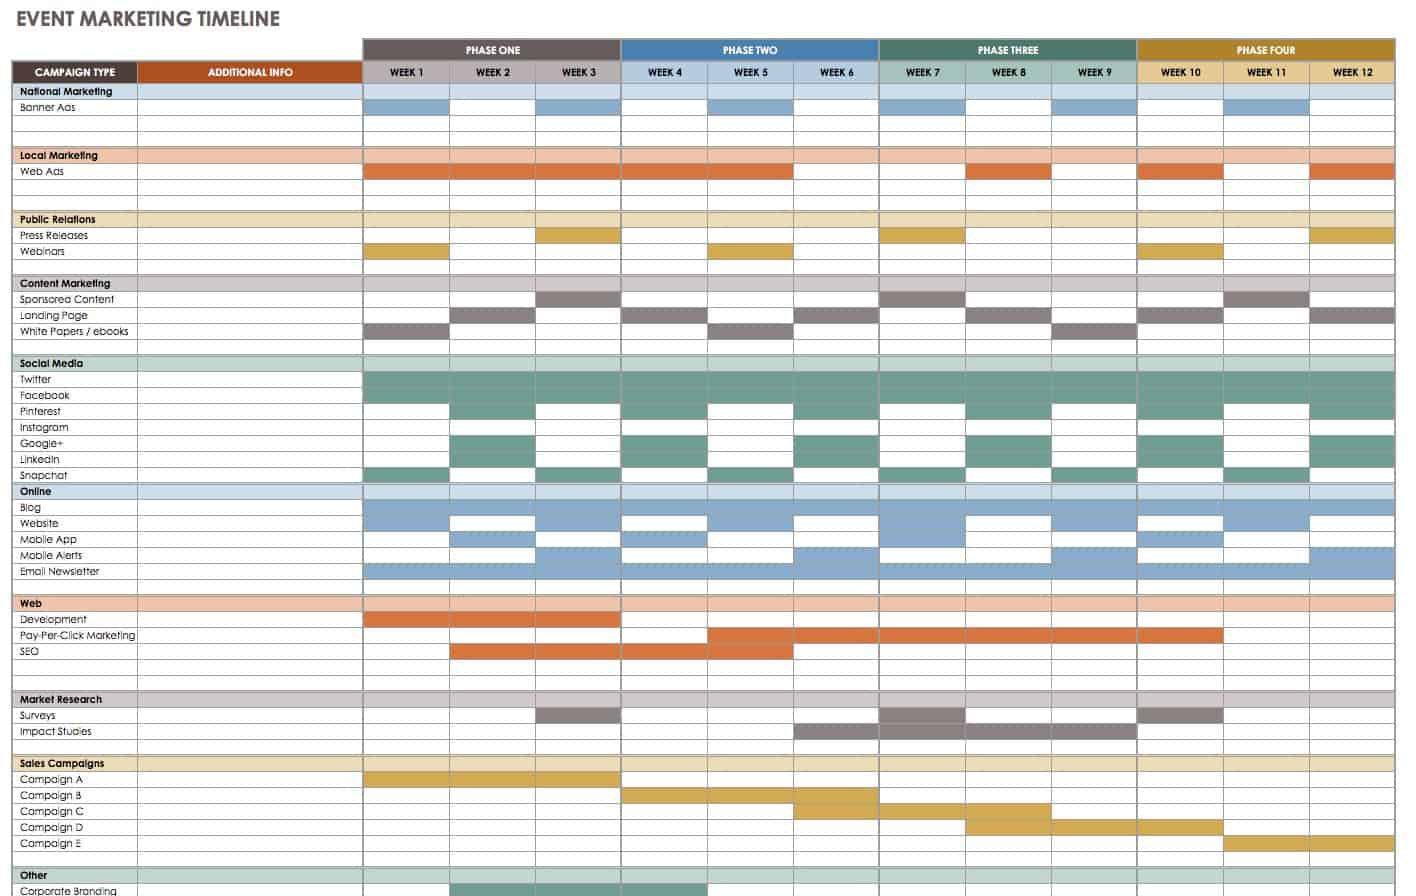 21 Free Event Planning Templates | Smartsheet within Conference Planning Template Excel